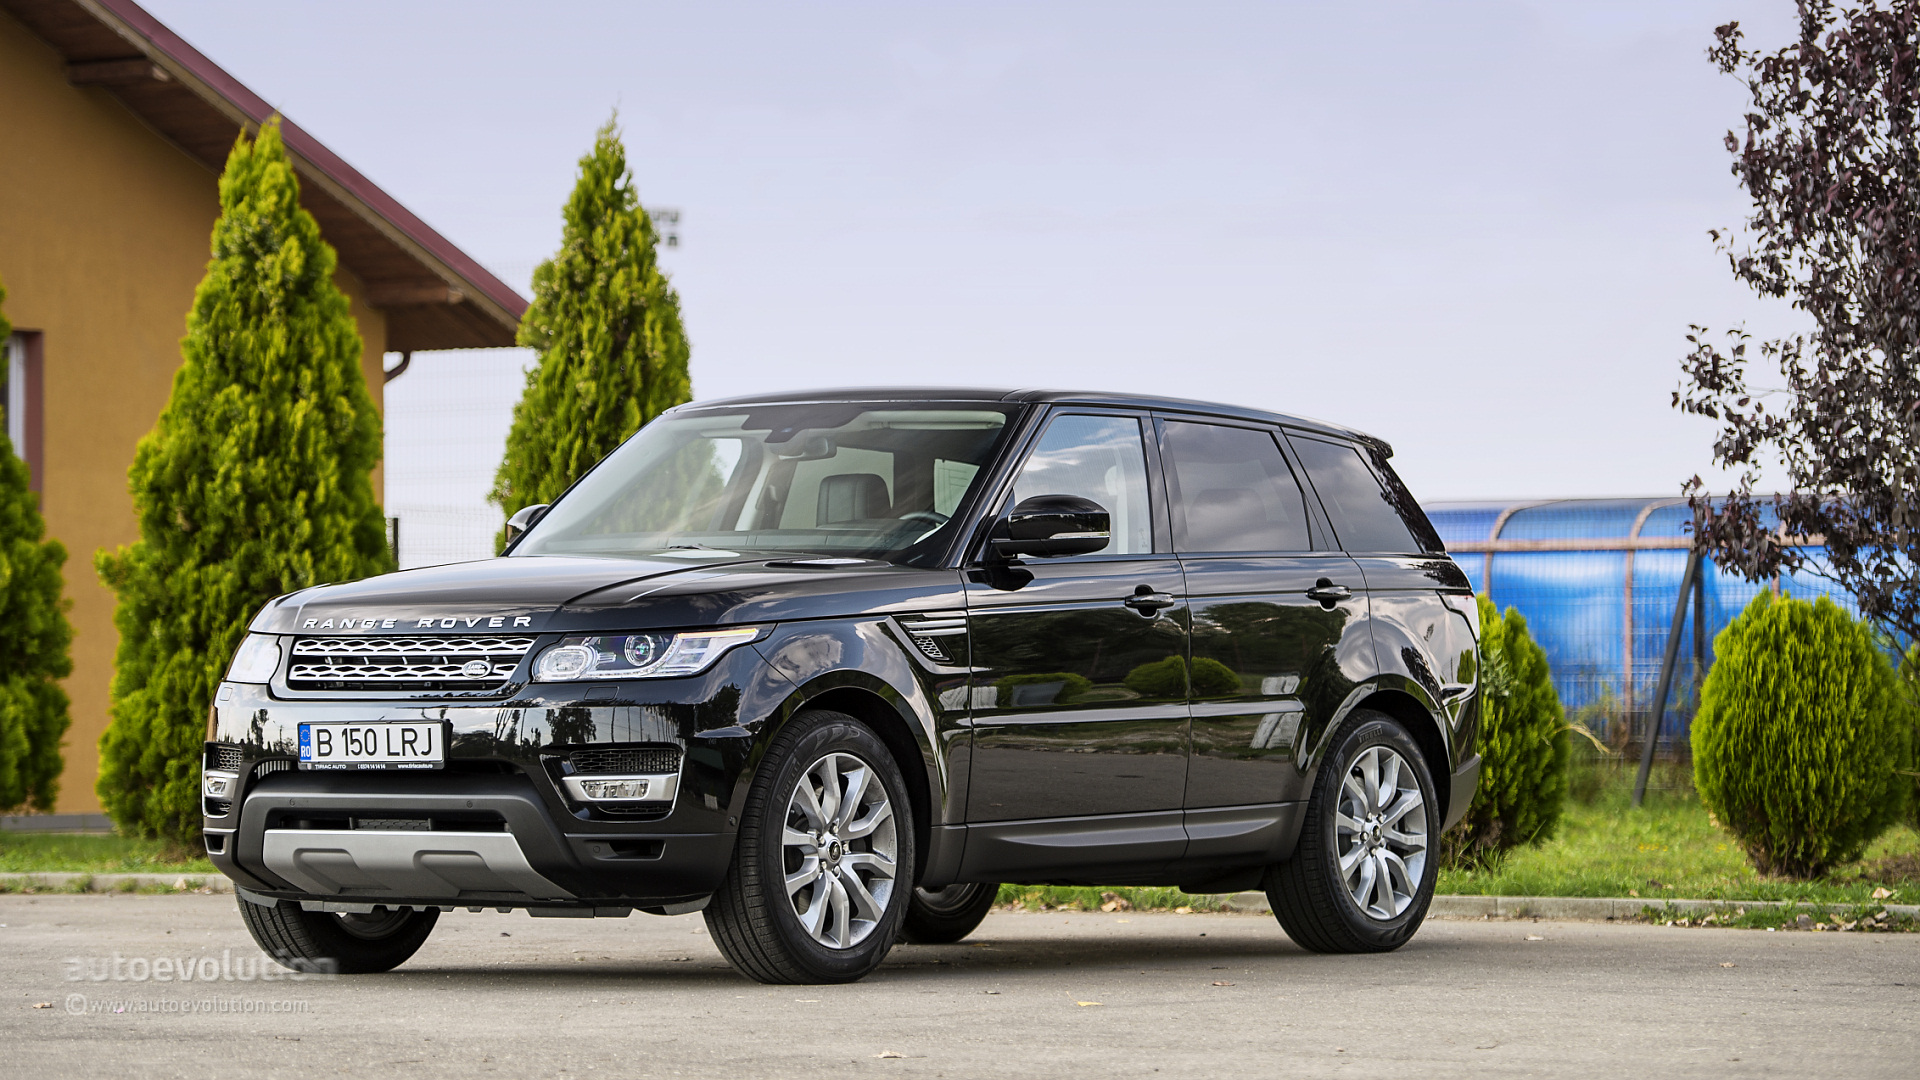 landrover land price review evoque specification range rover caradvice showroom